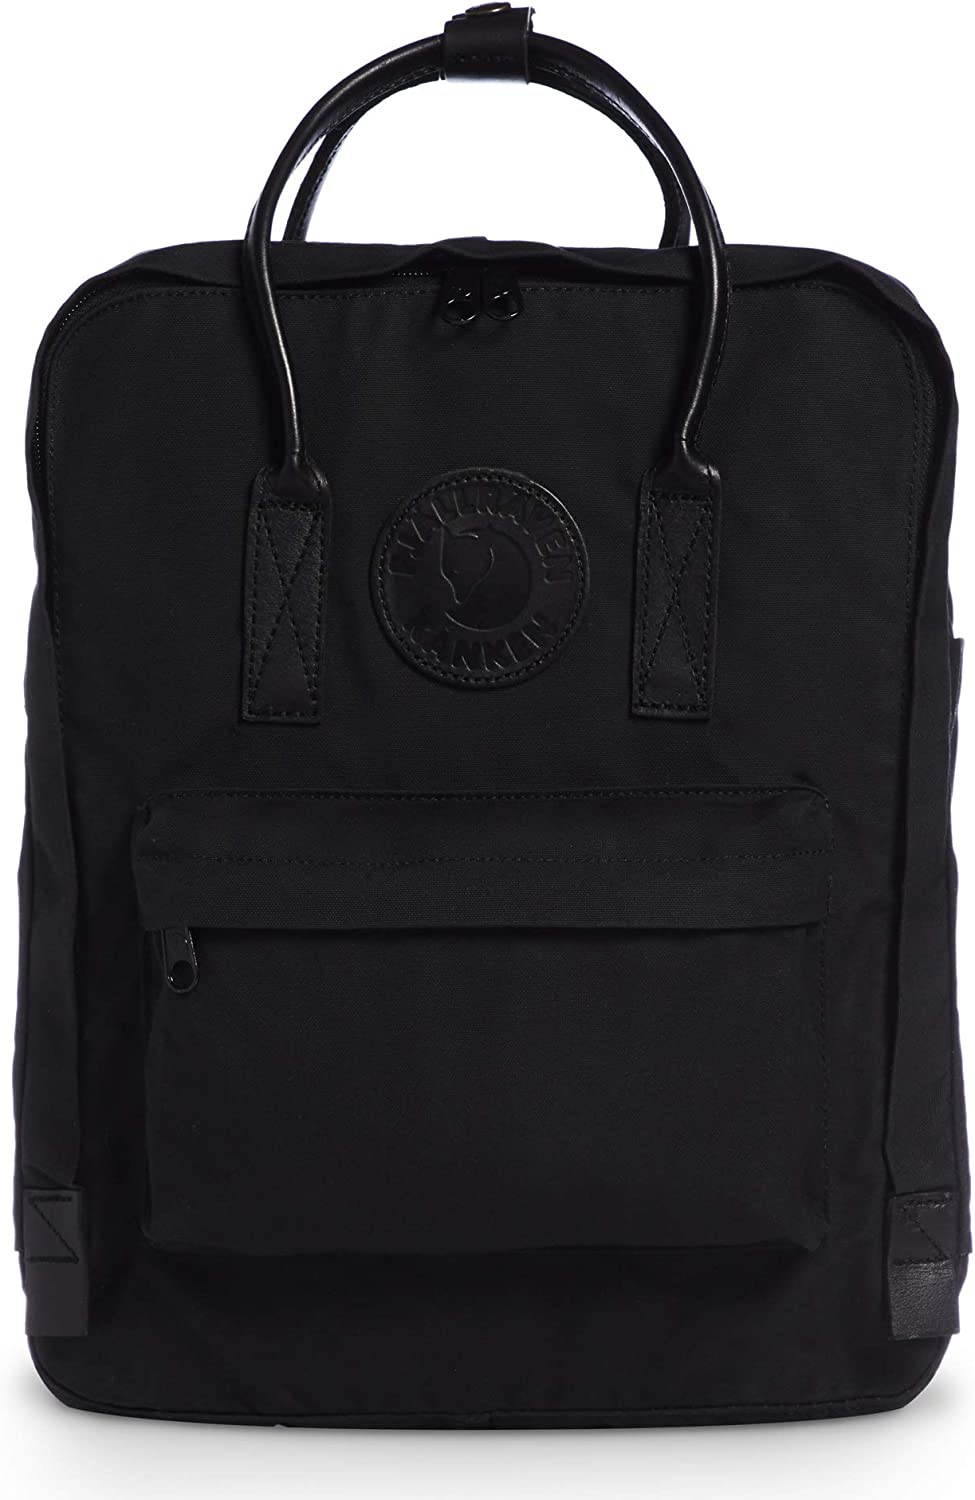 Fjallraven, Kanken No. 2 Backpack for Everyday, Black Edition